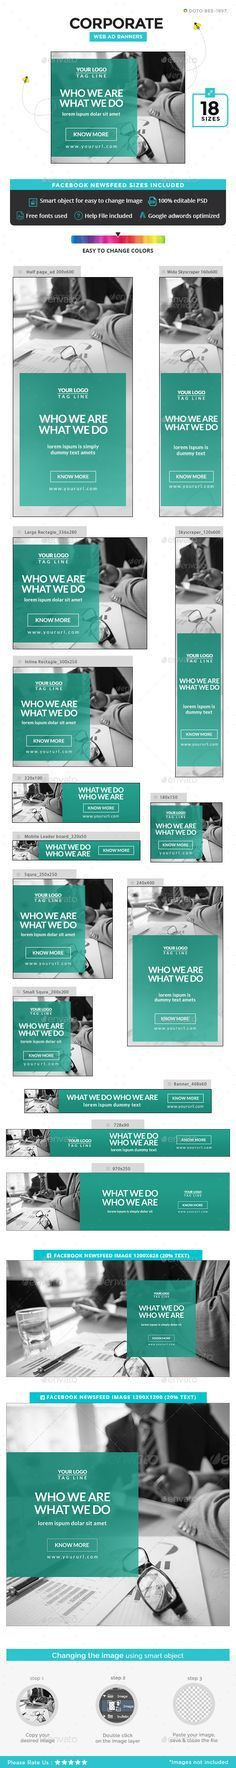 Multipurpose Web Banners. 21 awesome quality banner template PSD ...